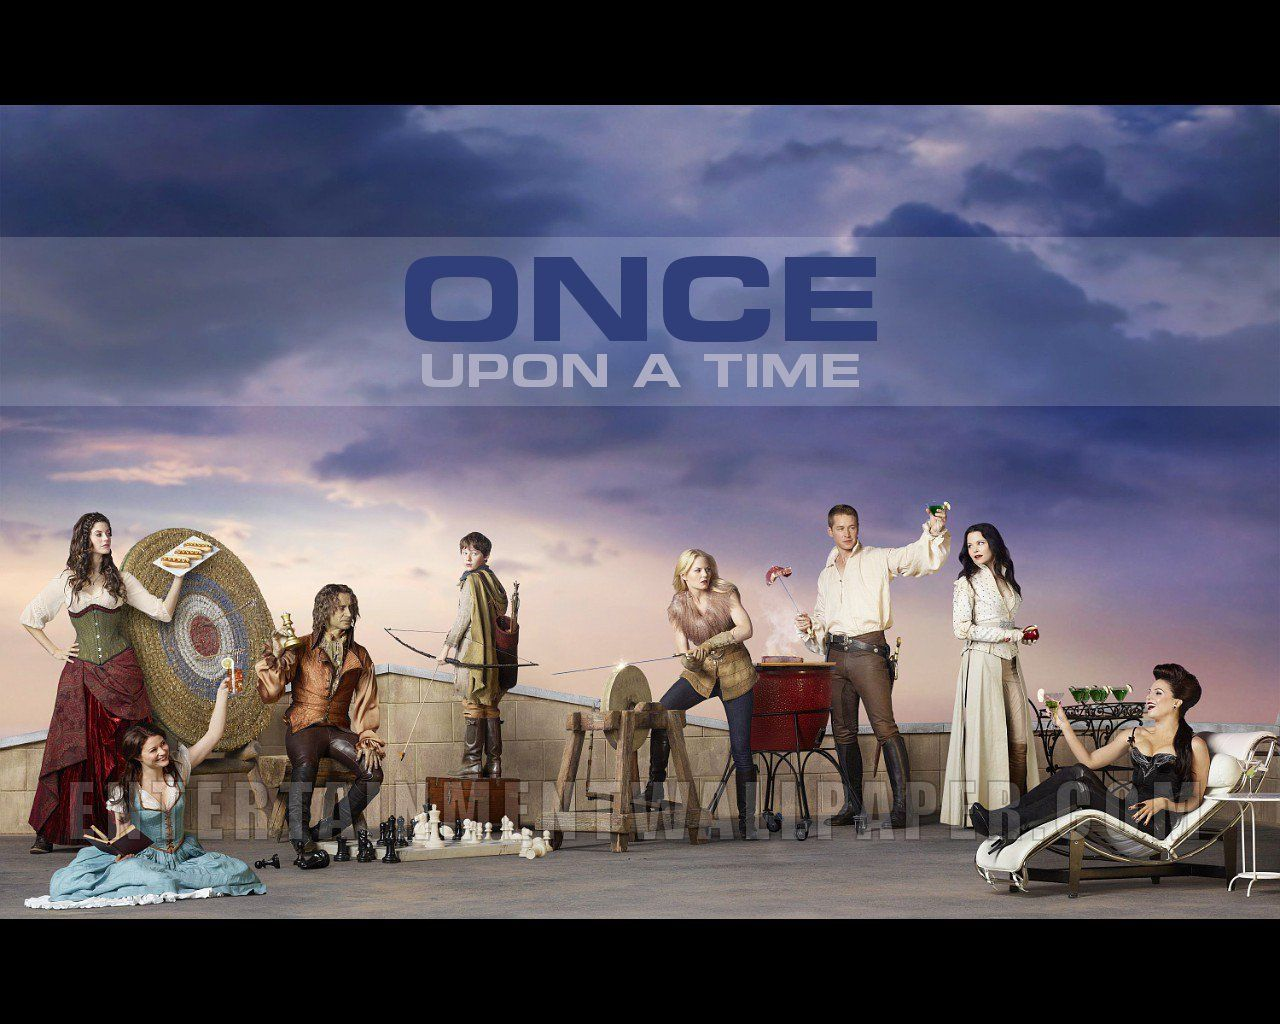 Meghan Ory as Red Riding Hood/Ruby, Emilie de Ravin as Belle, Robert Carlyle as Rumplestiltskin/Mr. Gold, Jared S. Gilmore as Henry Mills, Jennifer Morrison as Emma Swan, Josh Dallas as Prince Charming/David Nolan, Ginnifer Goodwin as Snow White/Mary Margaret Blanchard, and Lana Parrilla as The Evil Queen/Regina Mills